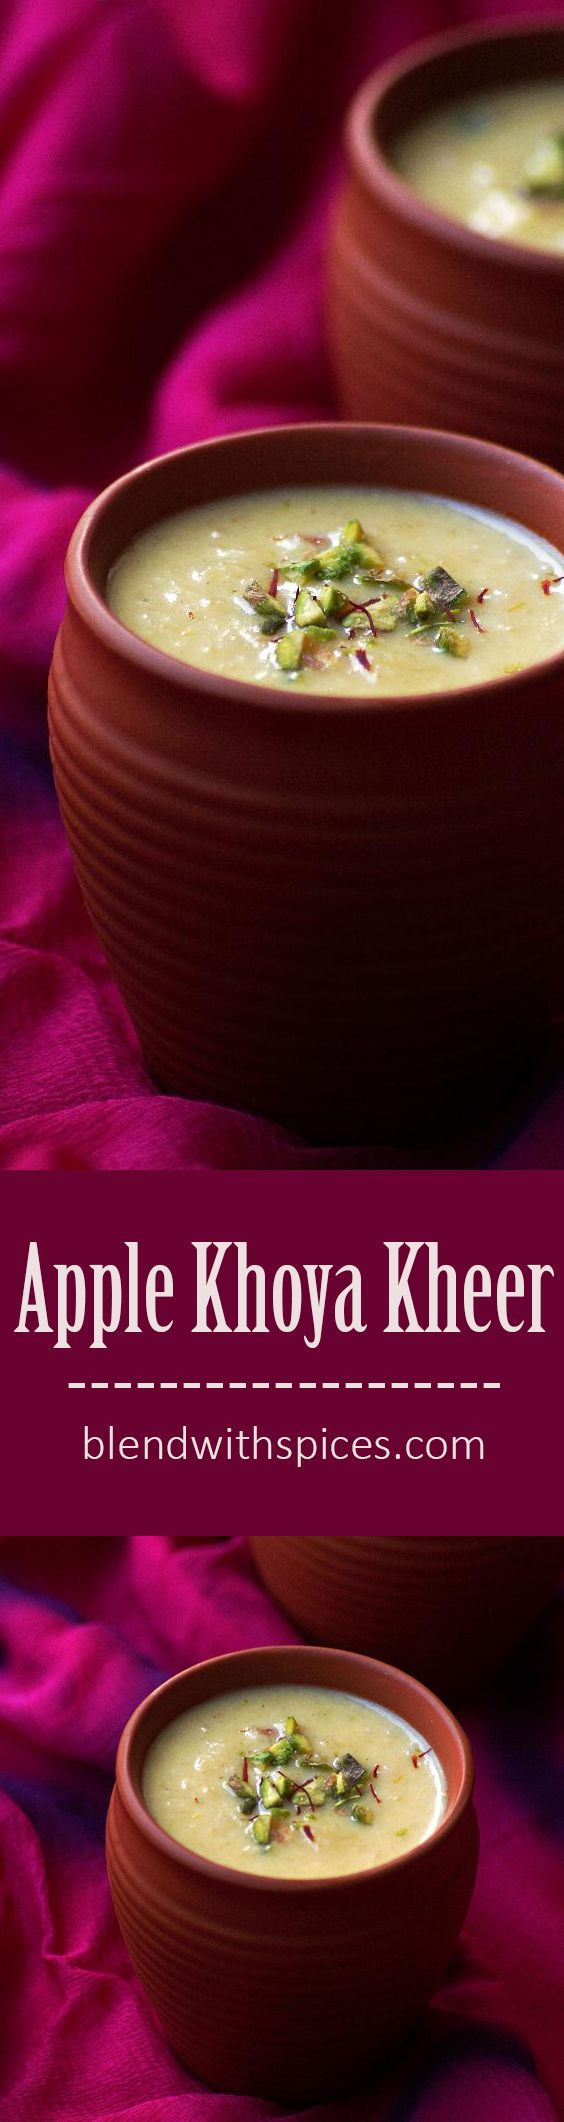 Apple Khoya Kheer Recipe - A super easy and quick Indian dessert made with apple, milk solids, saffron and  cardamom. Can be made in no time for any occasion. Holi Recipes - blendwithspices.com